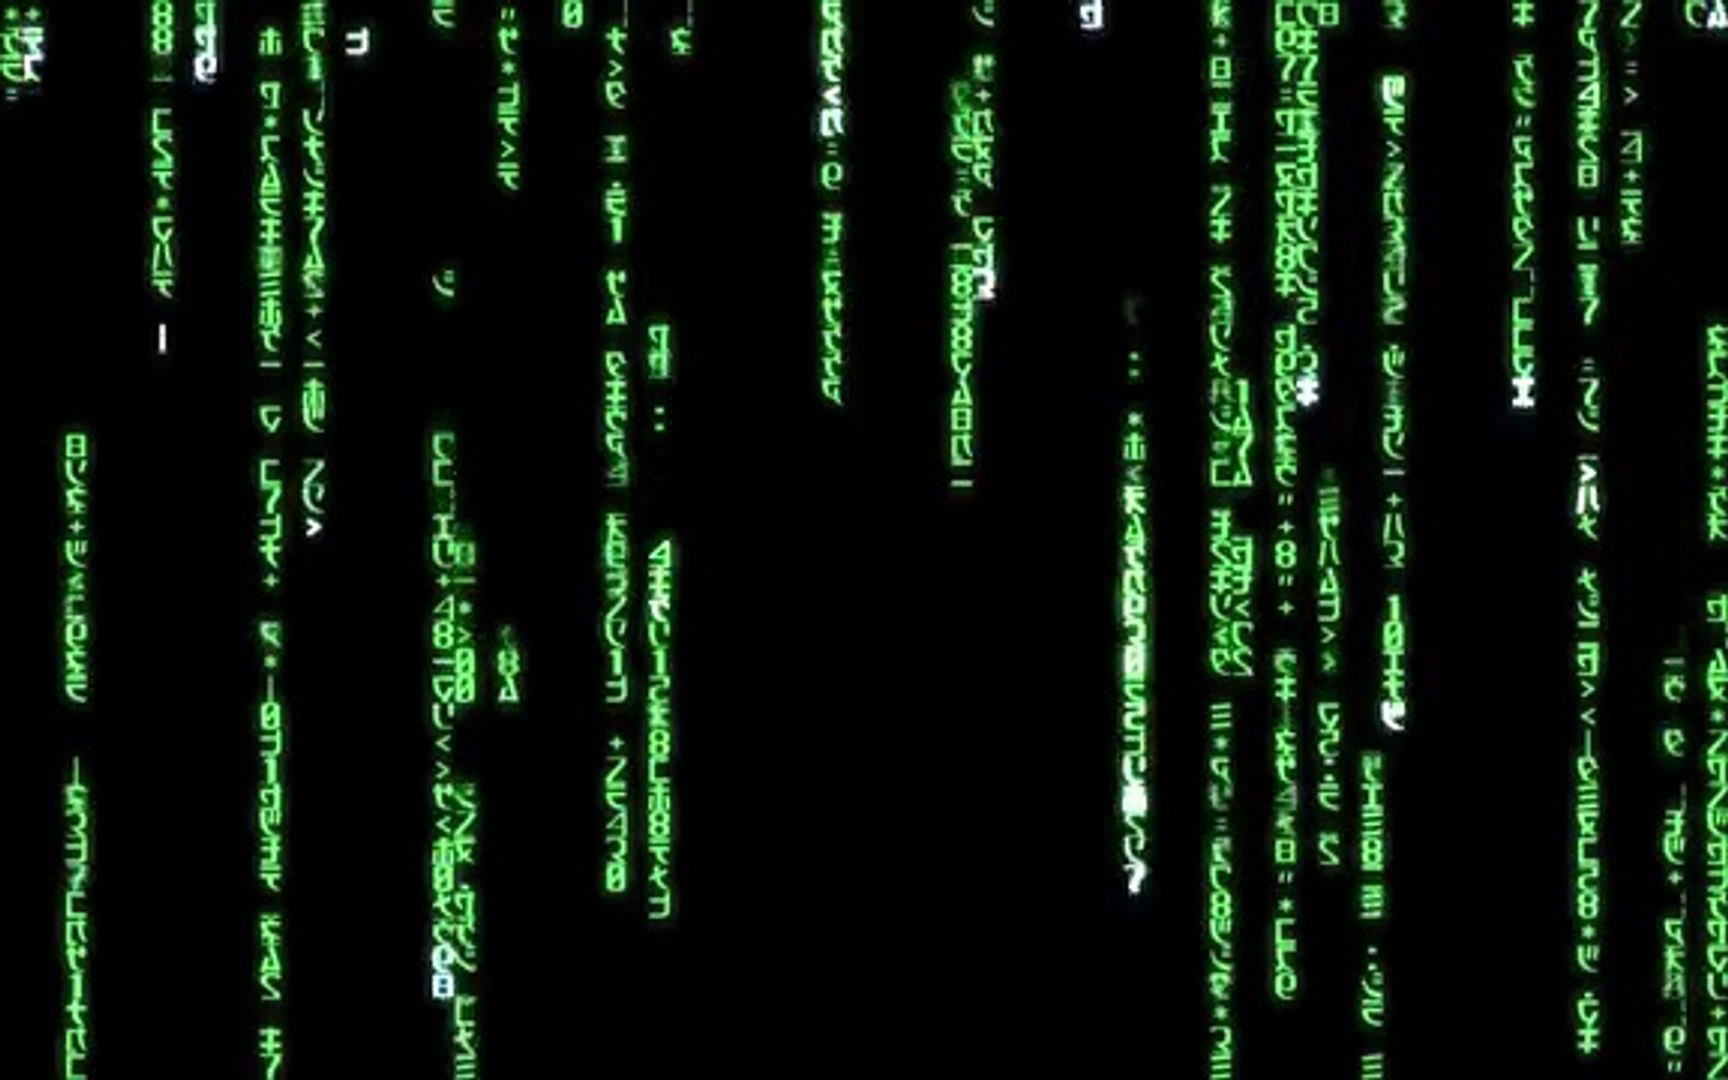 Matrix Code Green 1440x900 For Dreamscene 360p